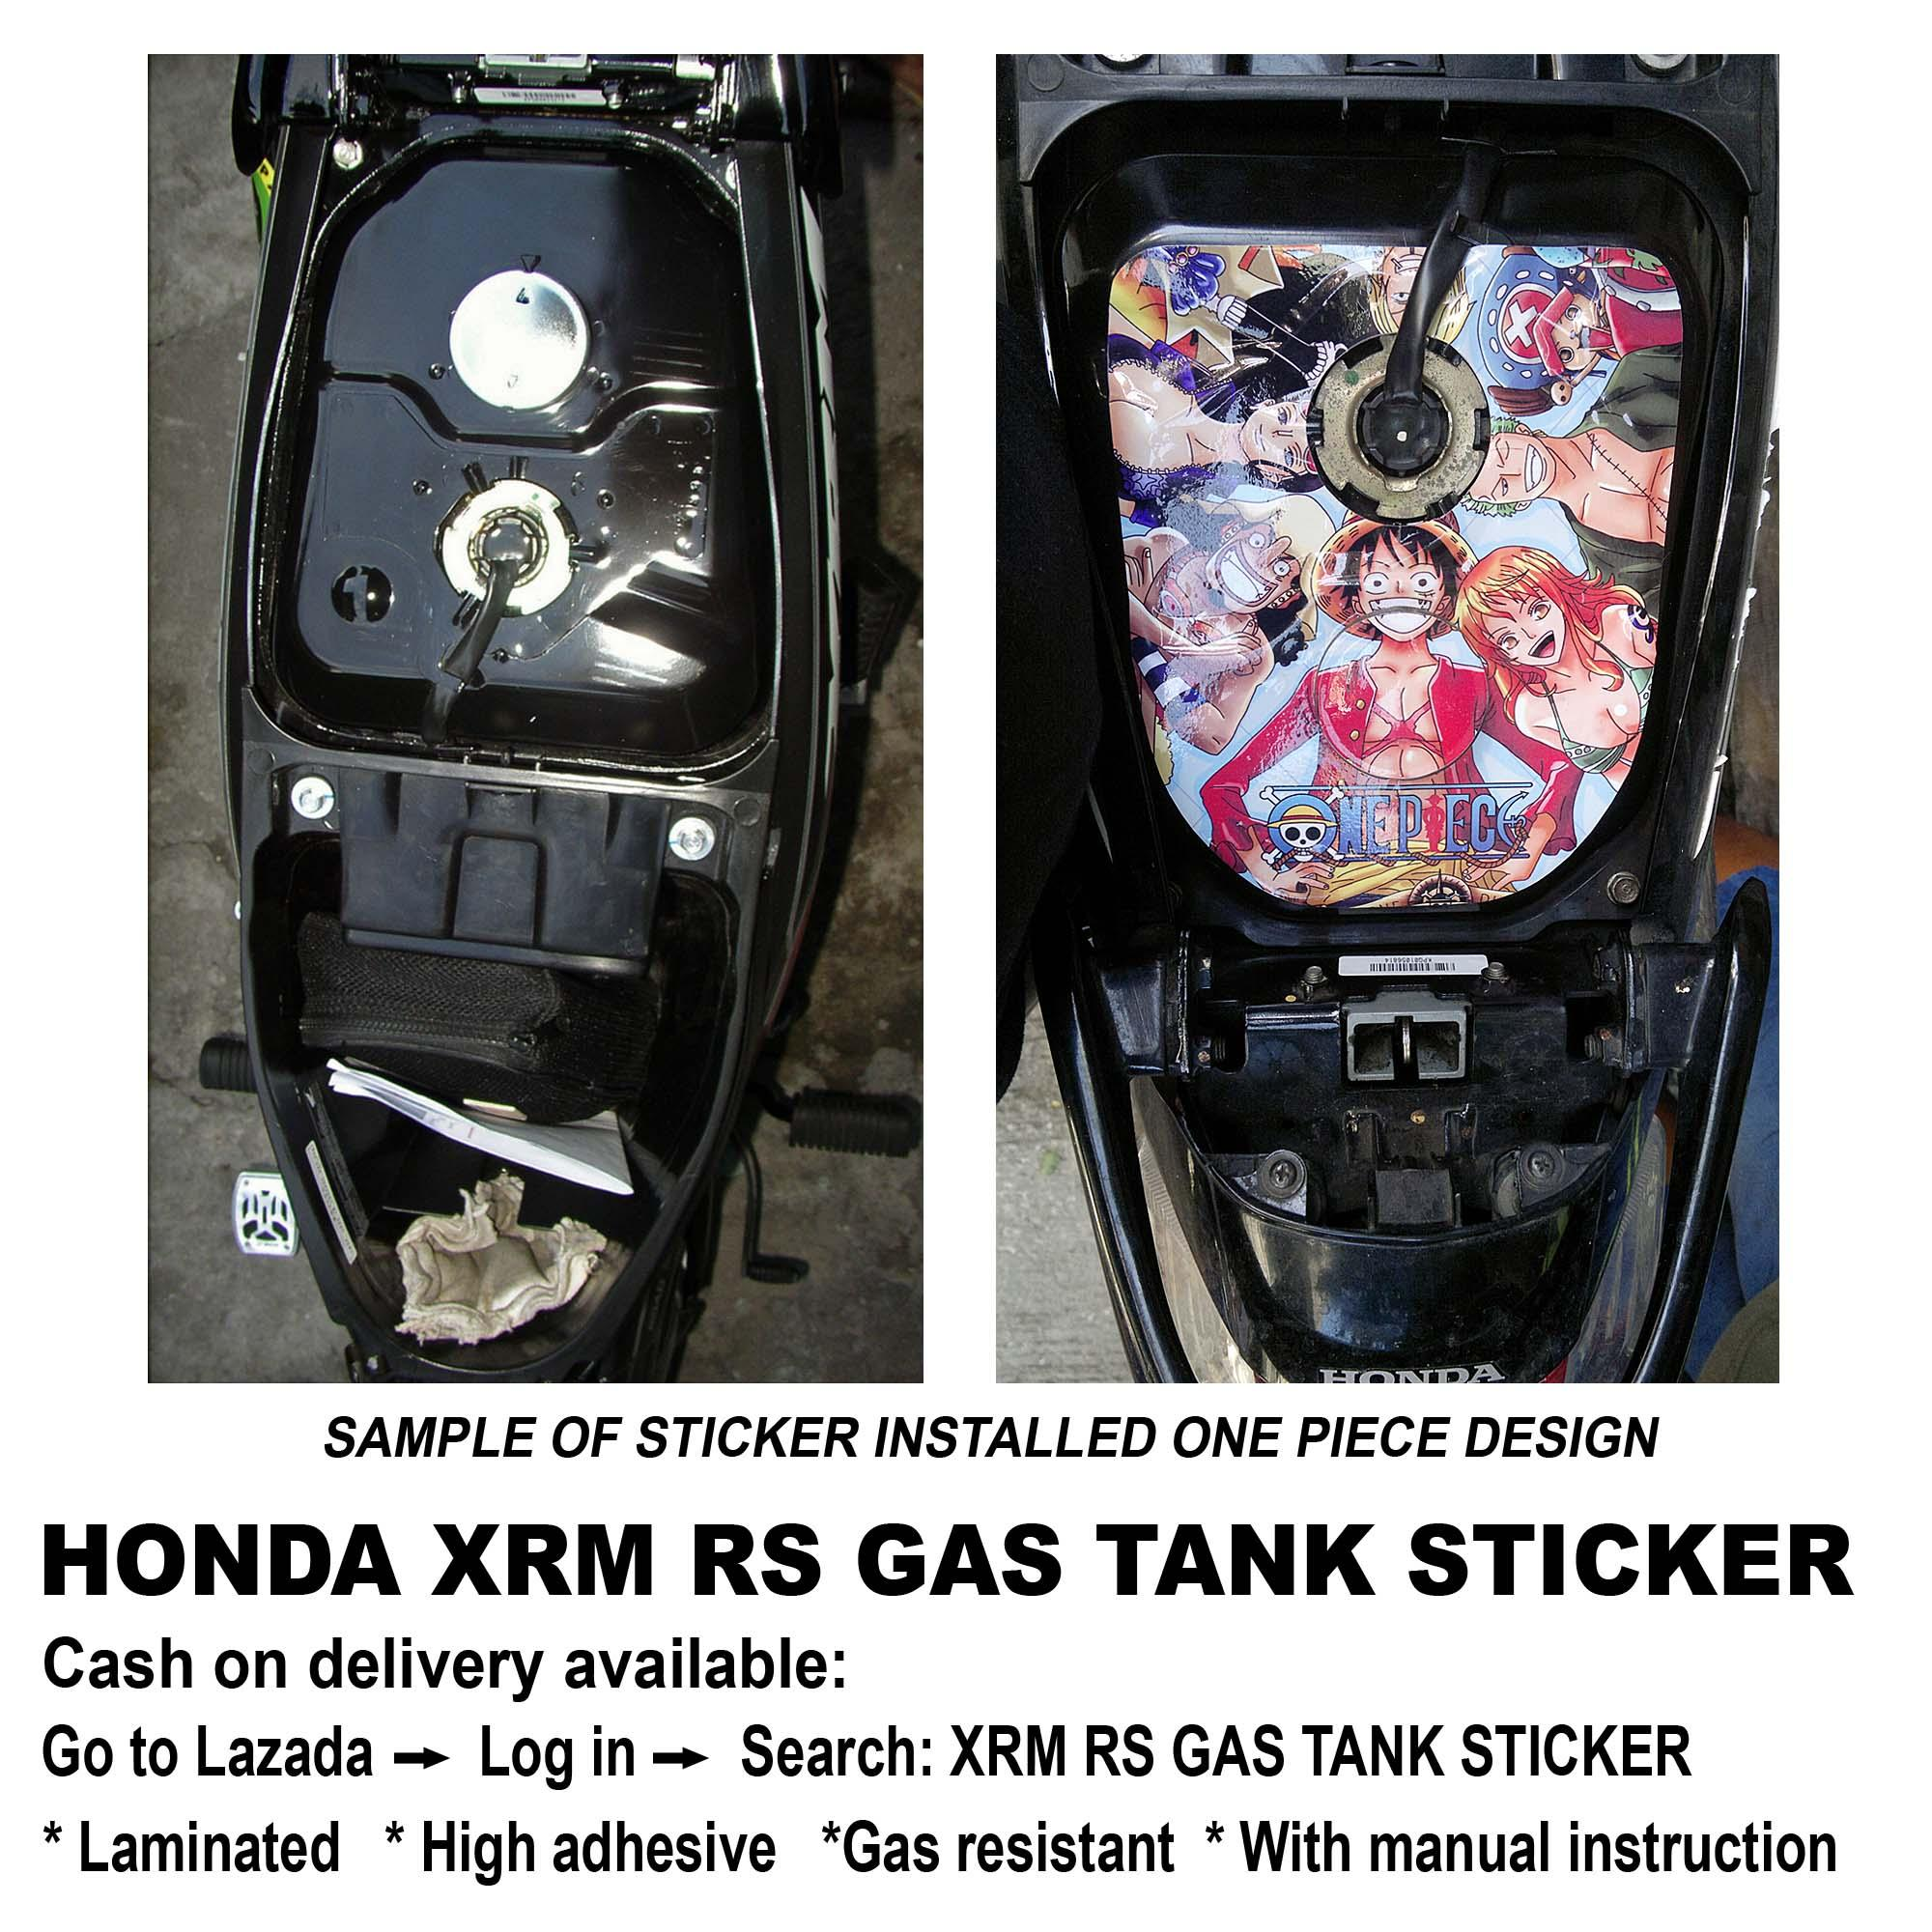 Xrm rs gas tank sticker anime girl 2 lazada ph